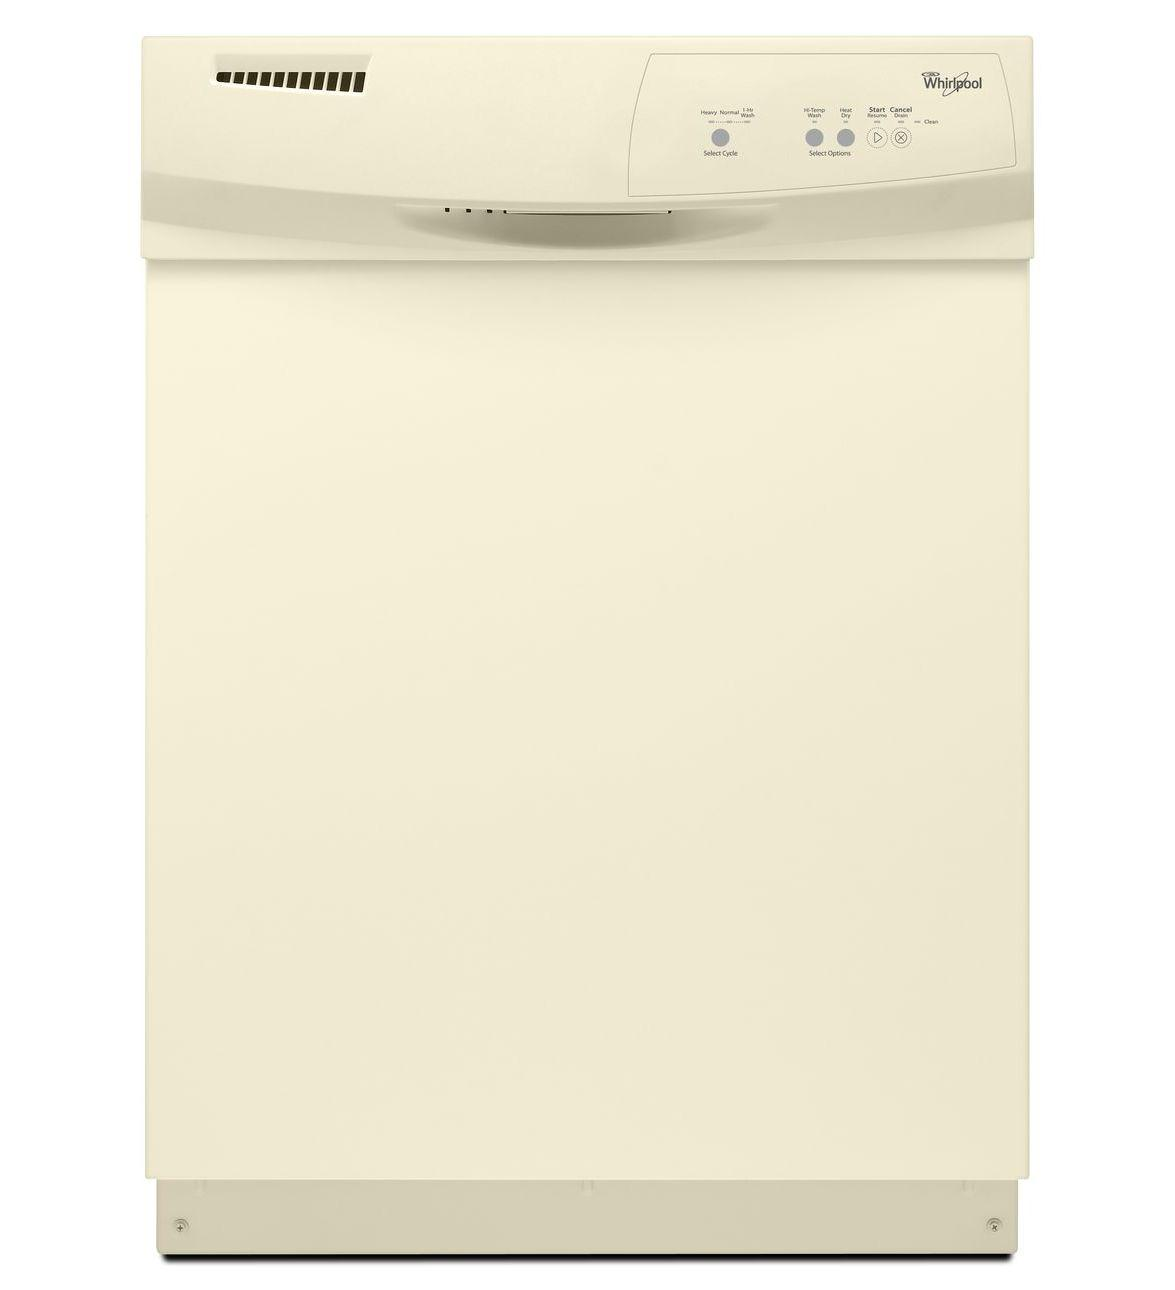 Wdf110pabs Whirlpool Wdf110pabs Built In Dishwashers